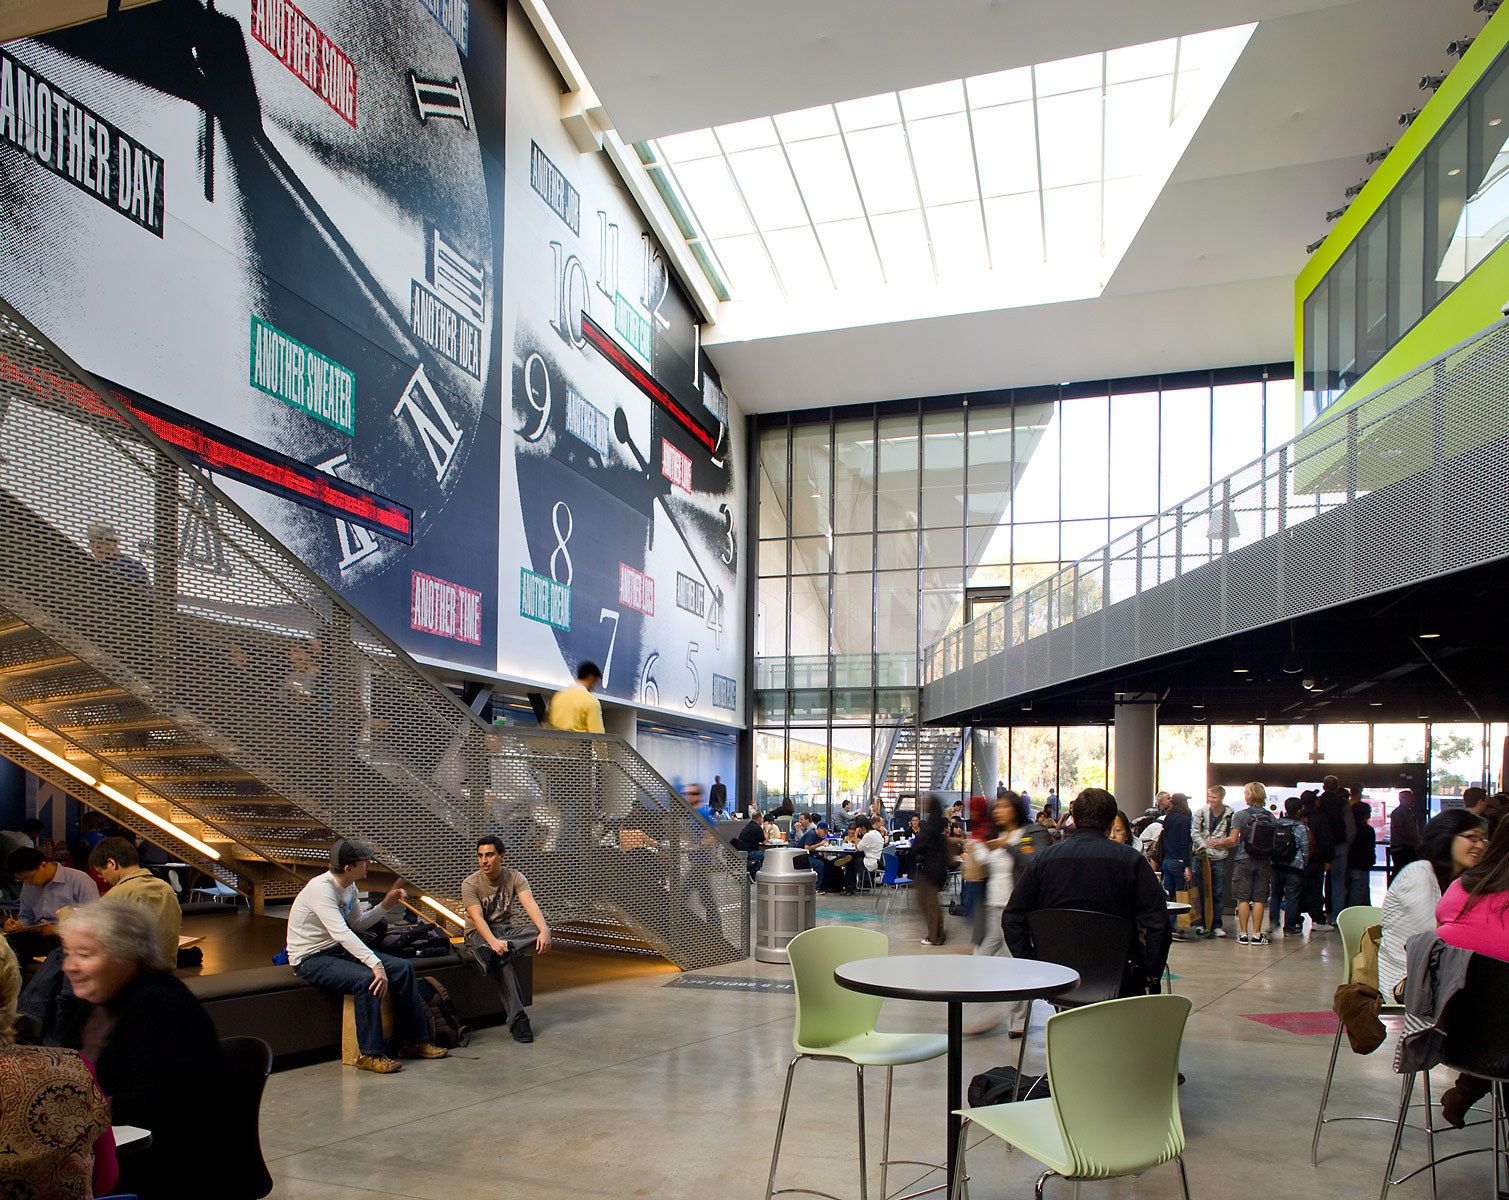 Project: University of California San Diego, Price Center EastClient: Cannon Design & UCSD Facilities Design & Construction